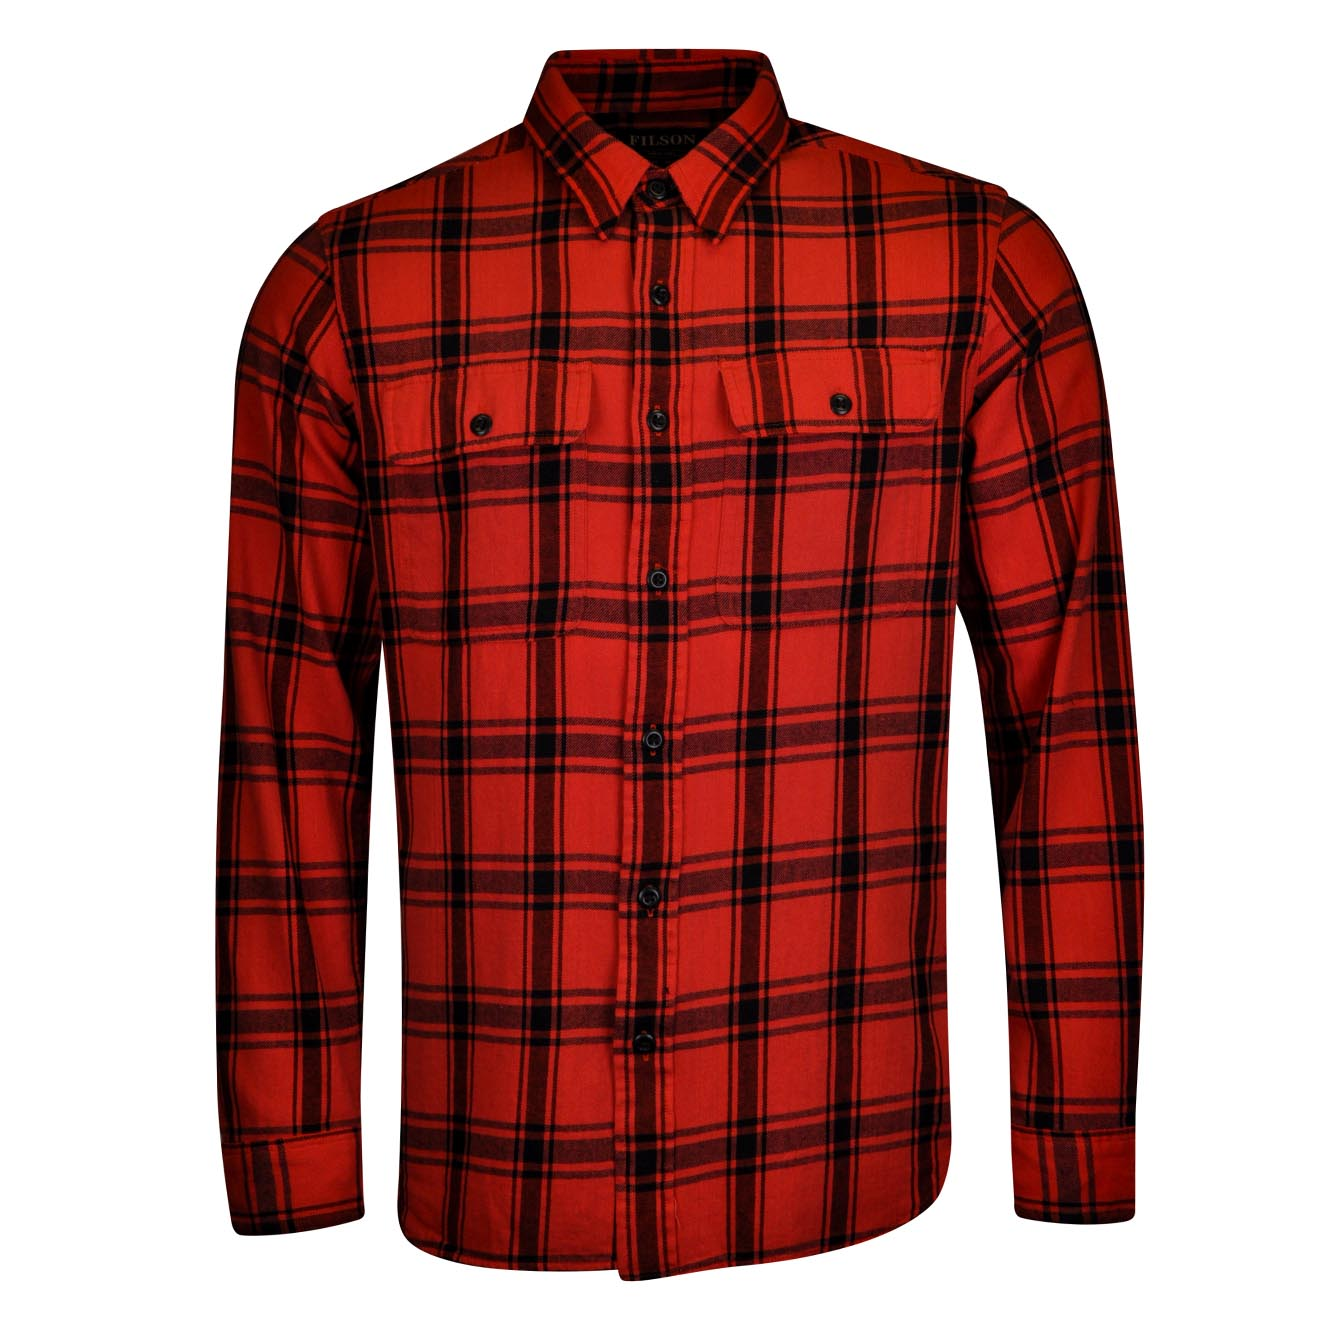 Filson Scout Shirt Red Black